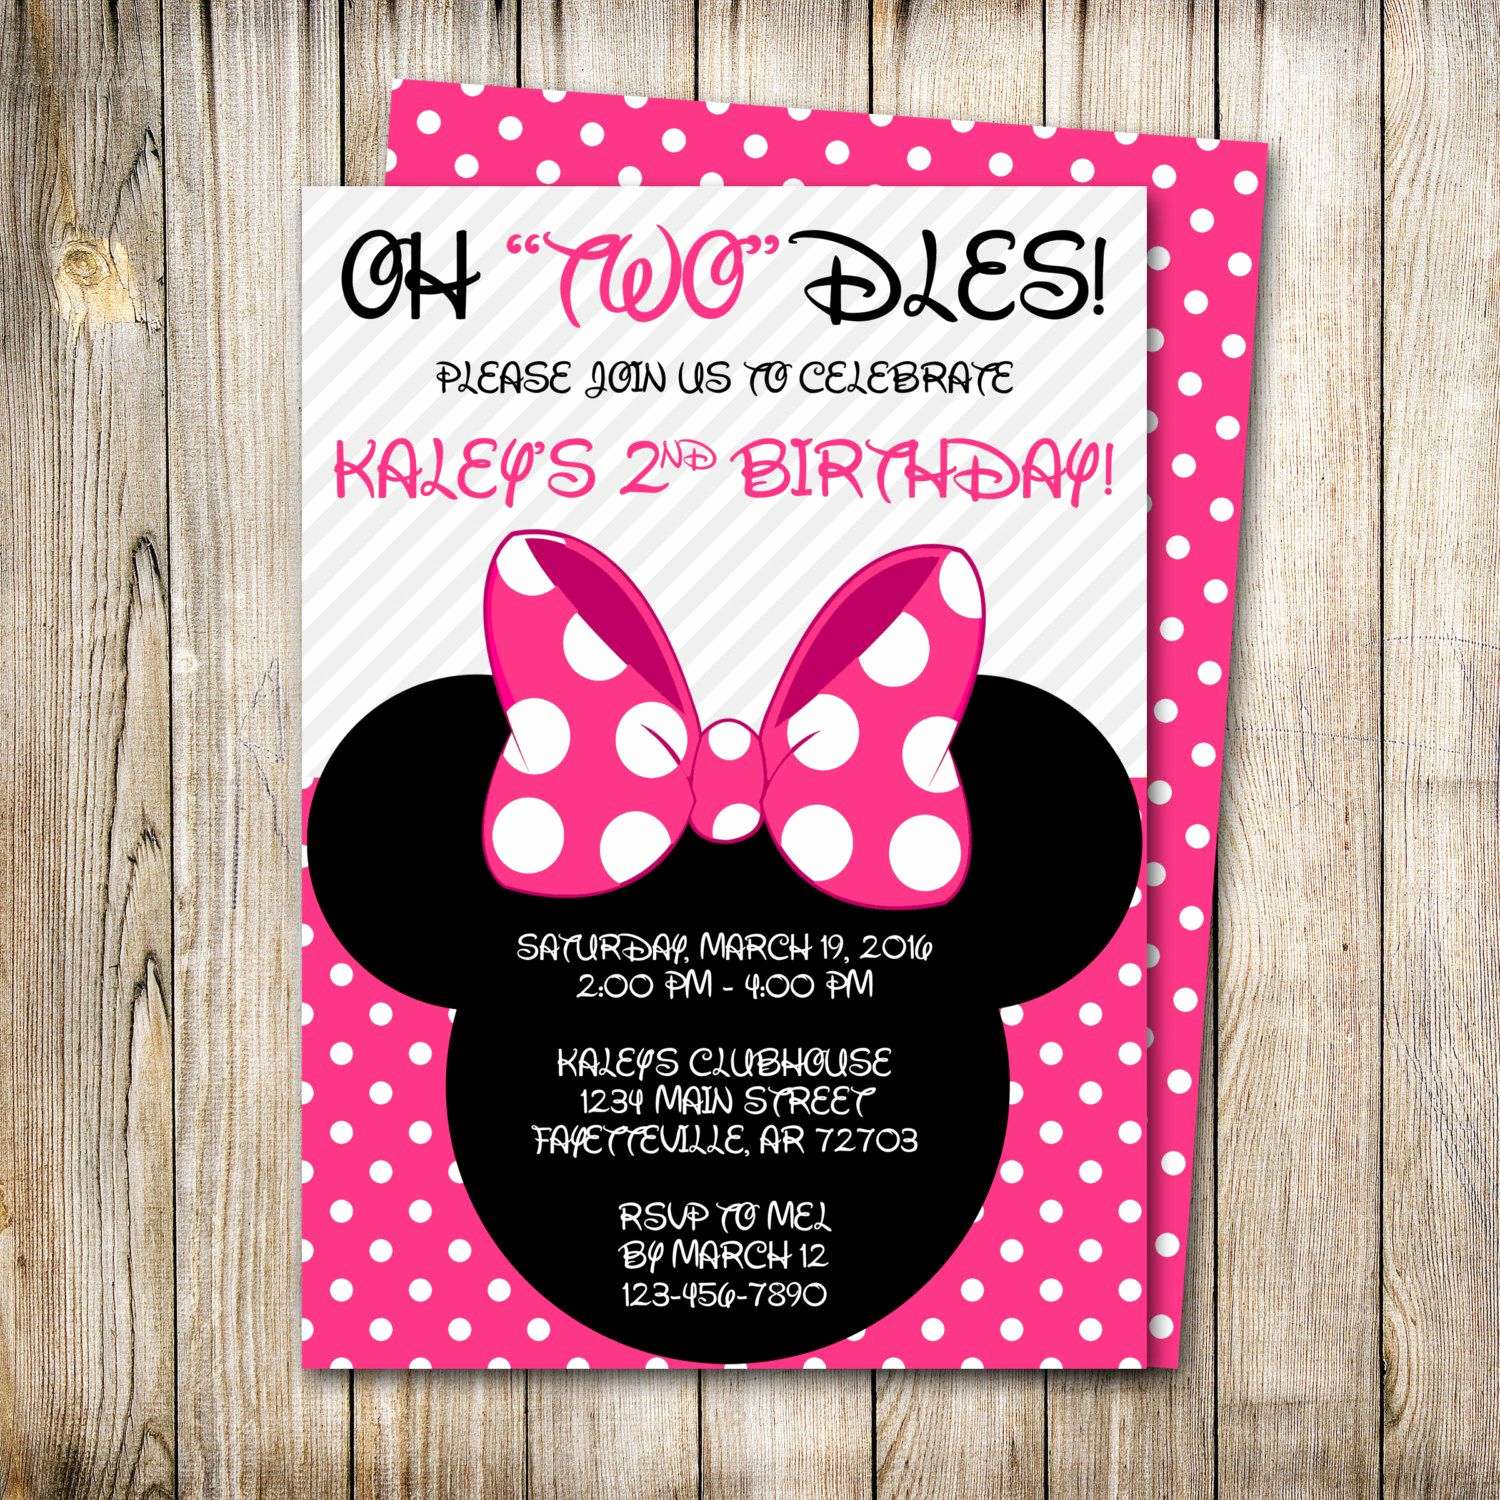 Minnie Mouse Birthday Invitations Lovely Minnie Mouse Birthday Invitation Minnie Mouse Birthday